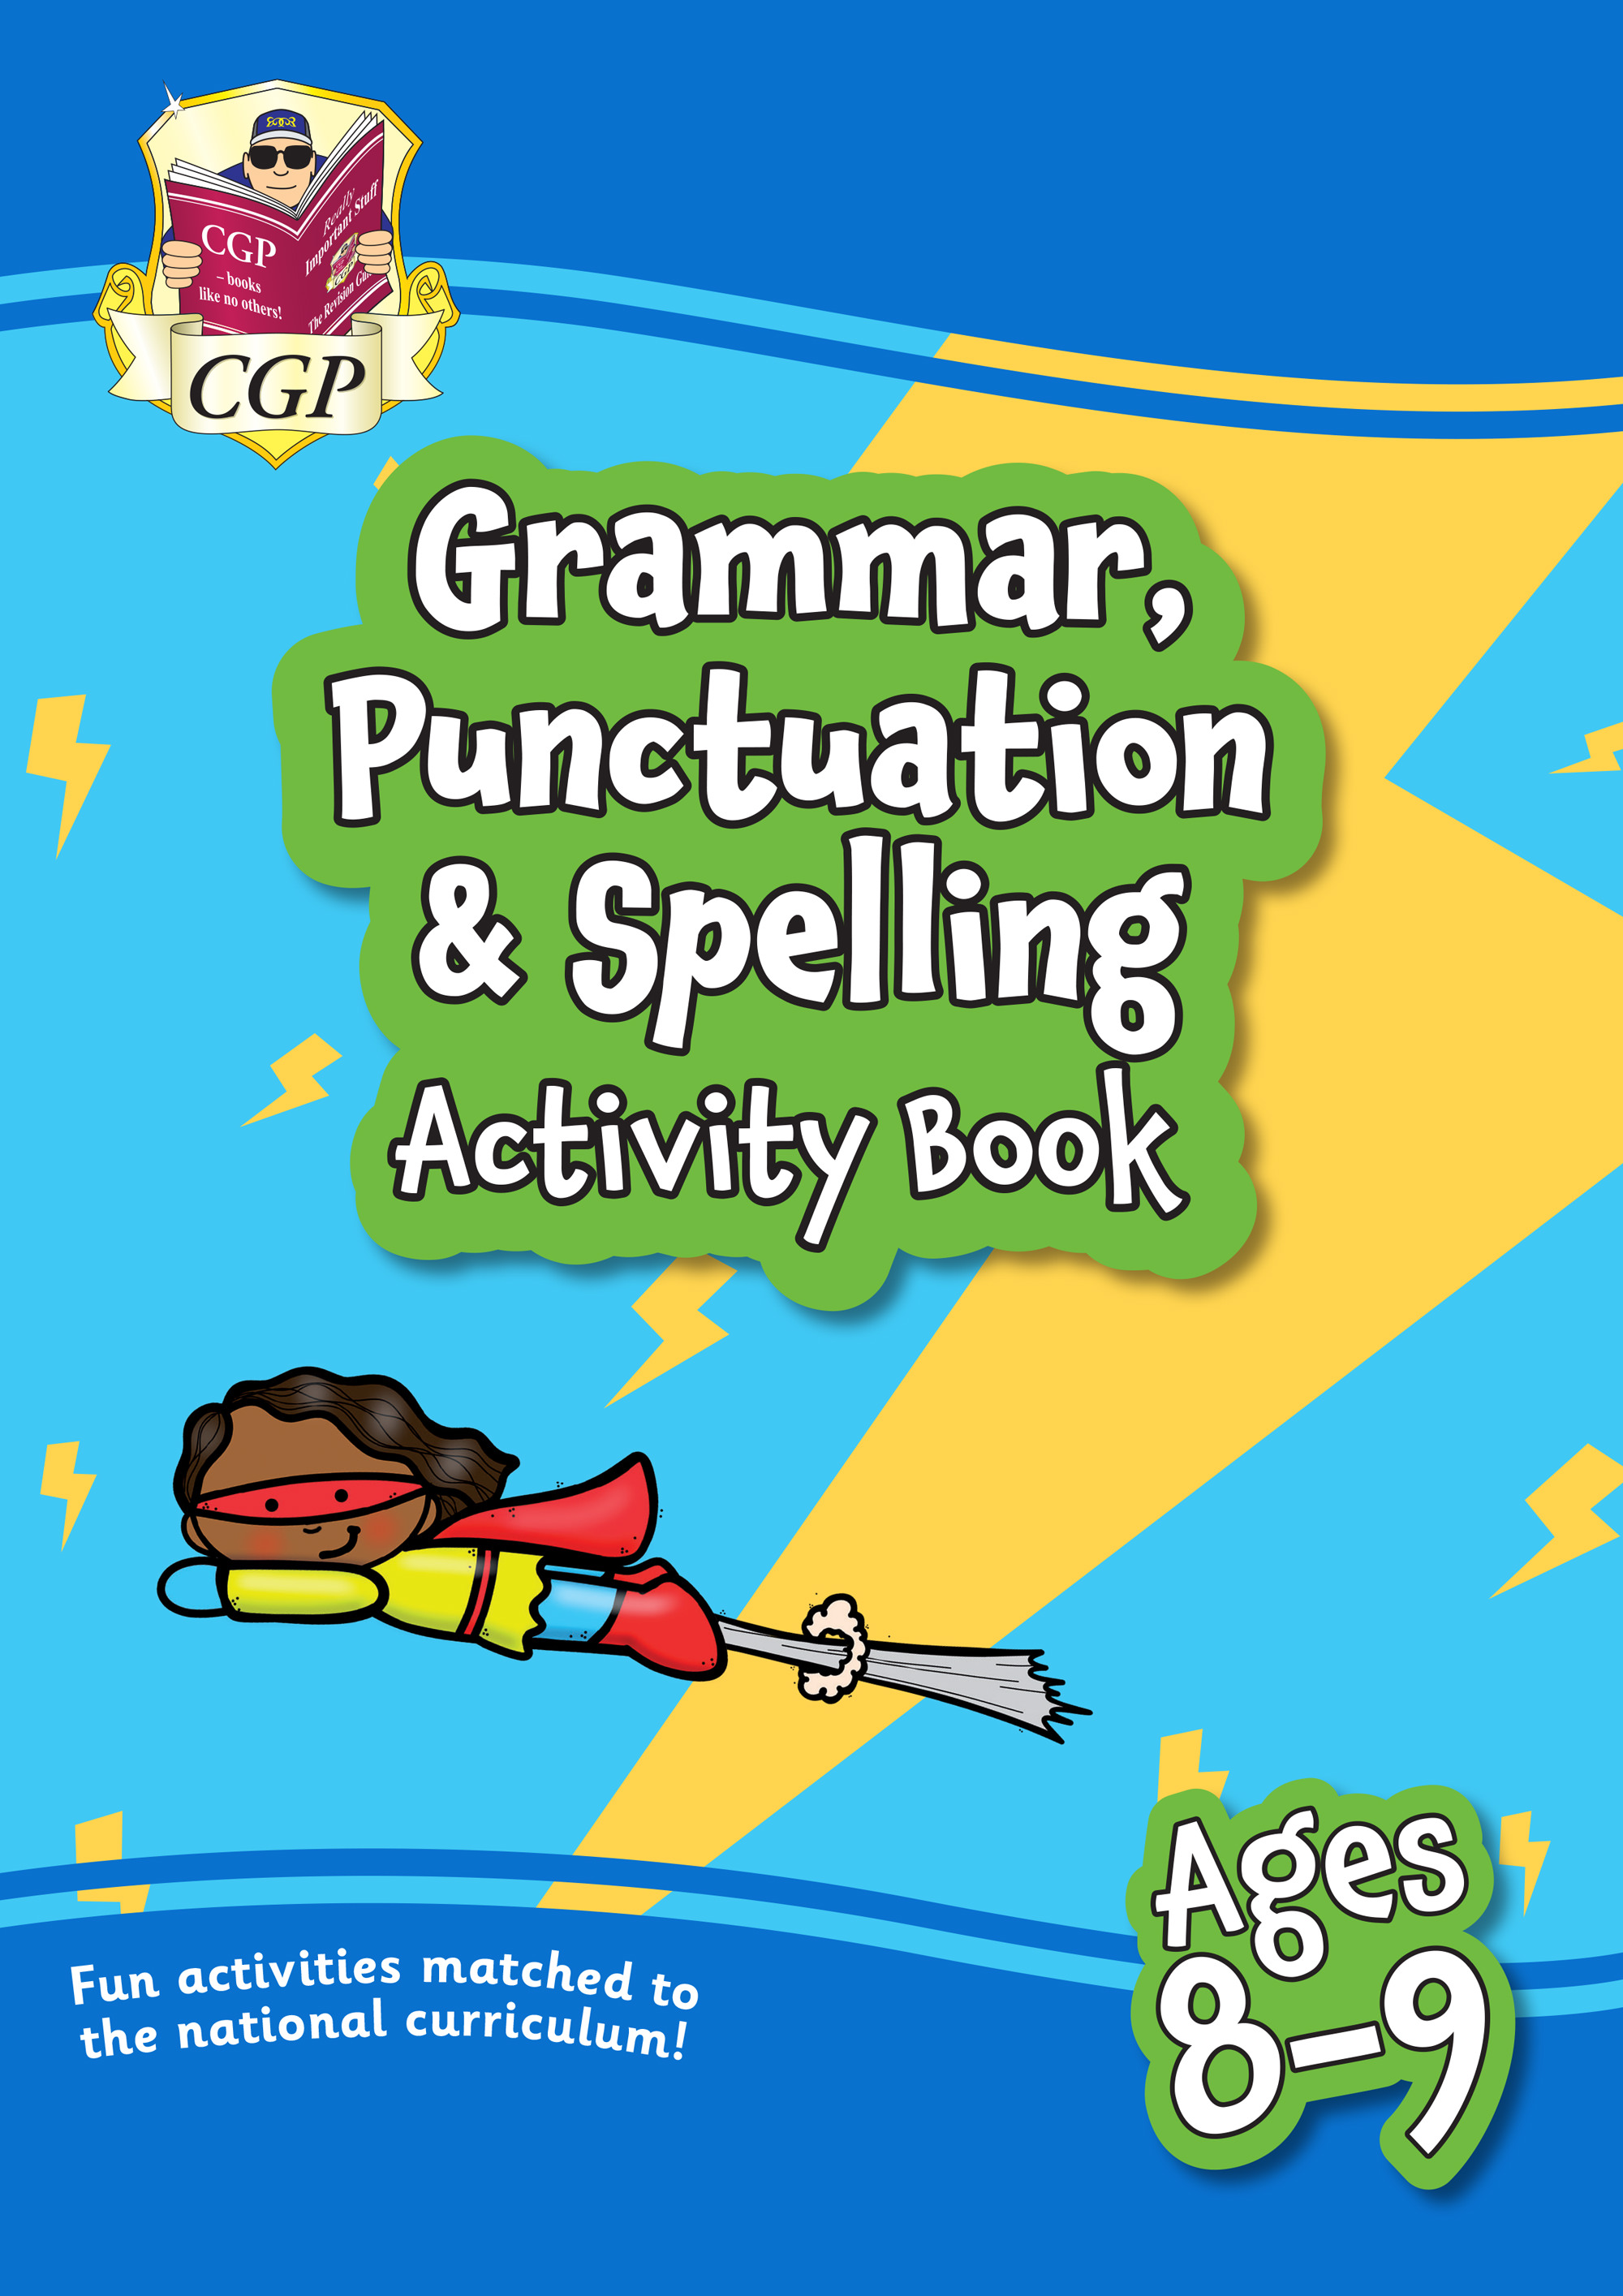 EPF4GQ21 - New Grammar, Punctuation & Spelling Home Learning Activity Book for Ages 8-9